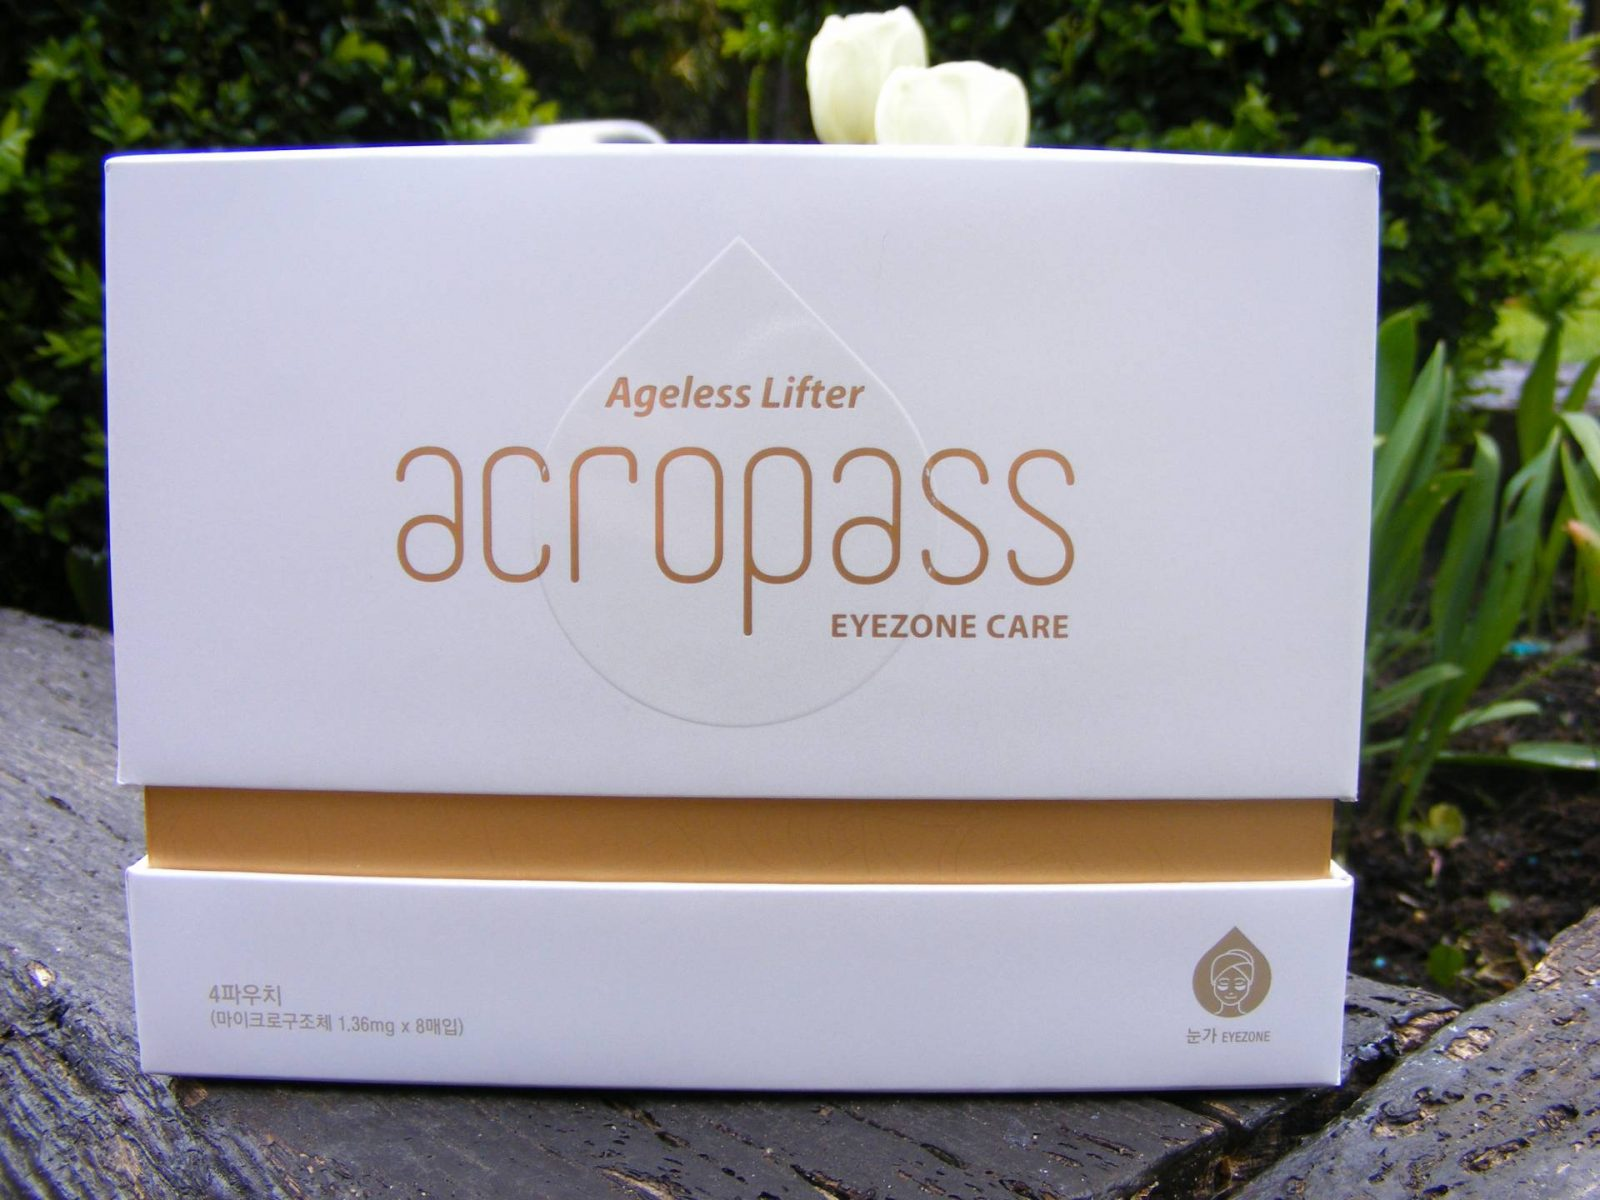 Skinova Acropass Ageless Lifter Eyezone Care